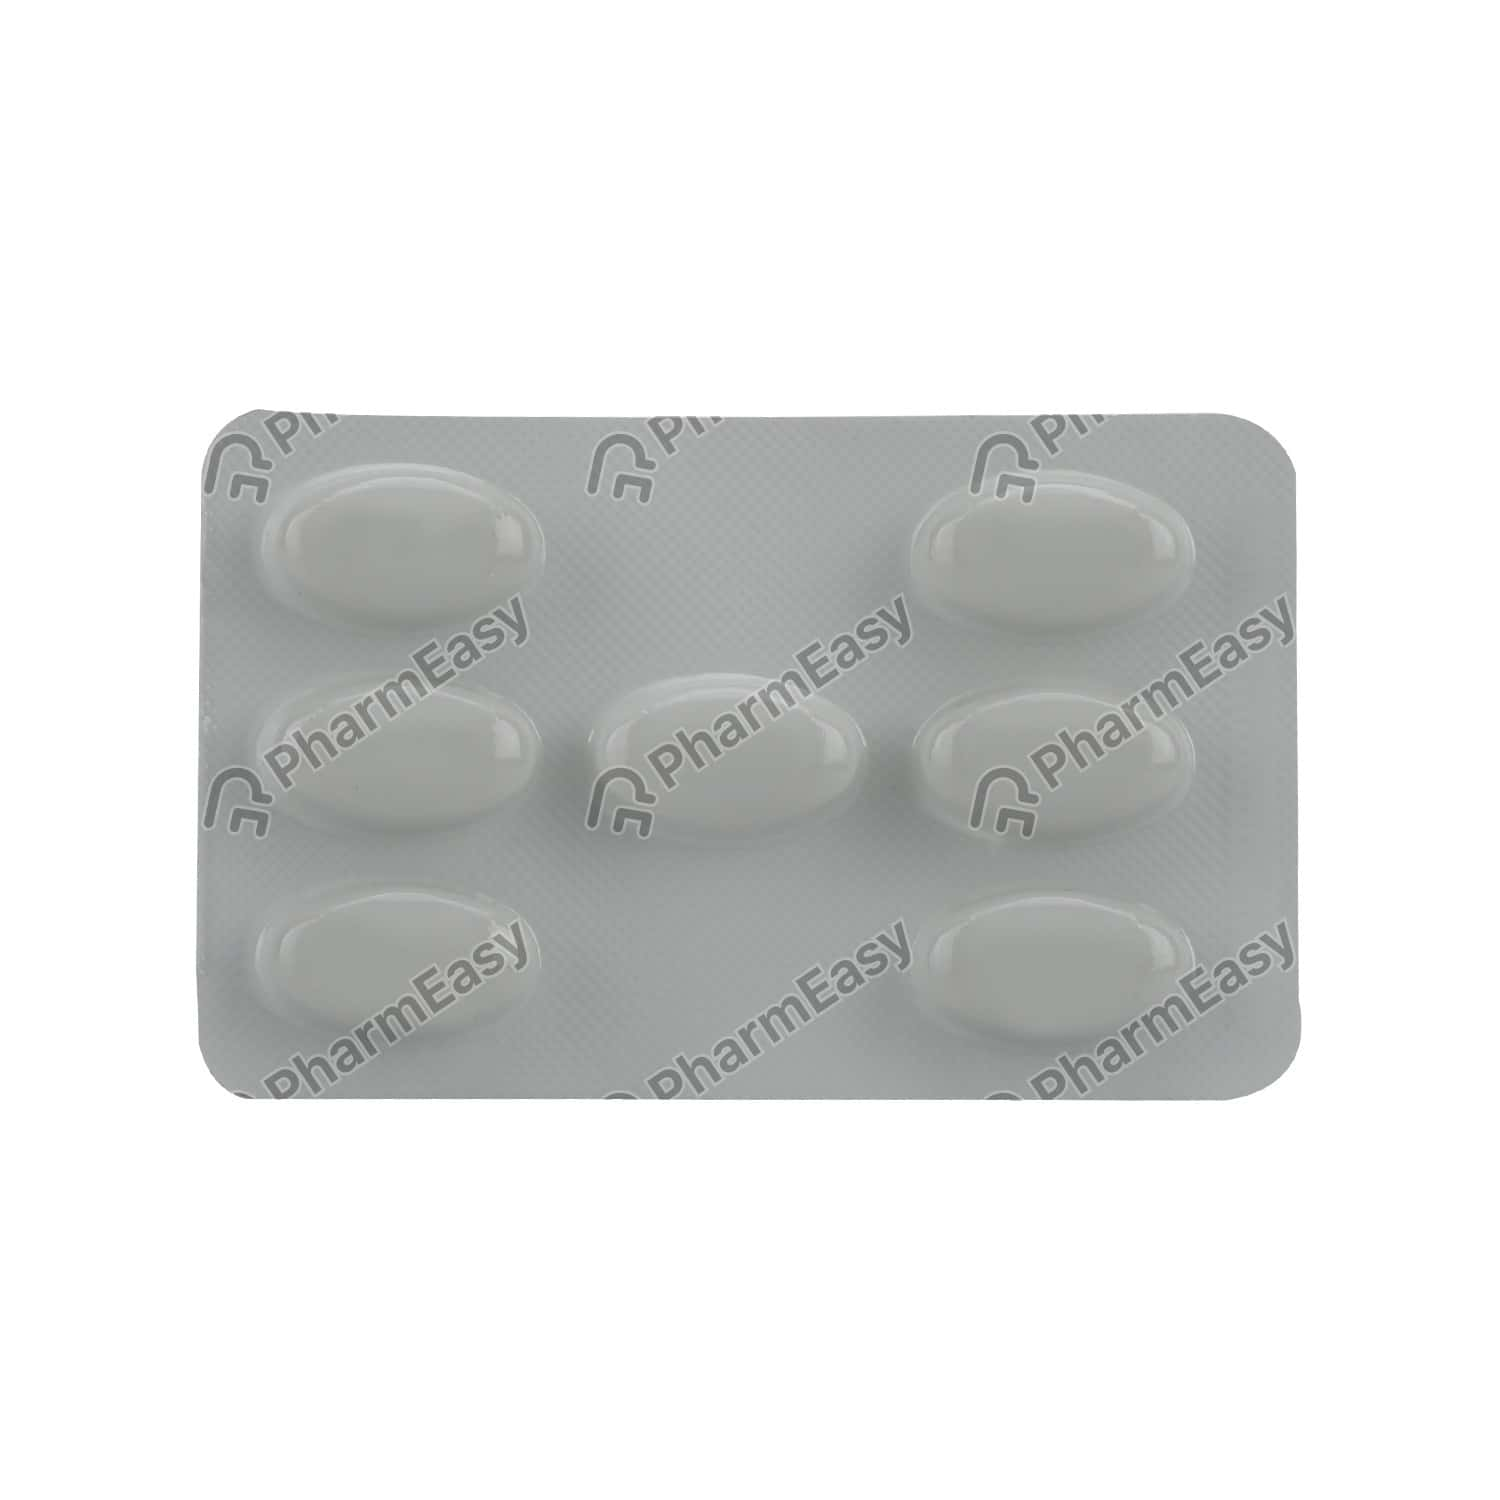 Thank Od Strip Of 10 Tablets